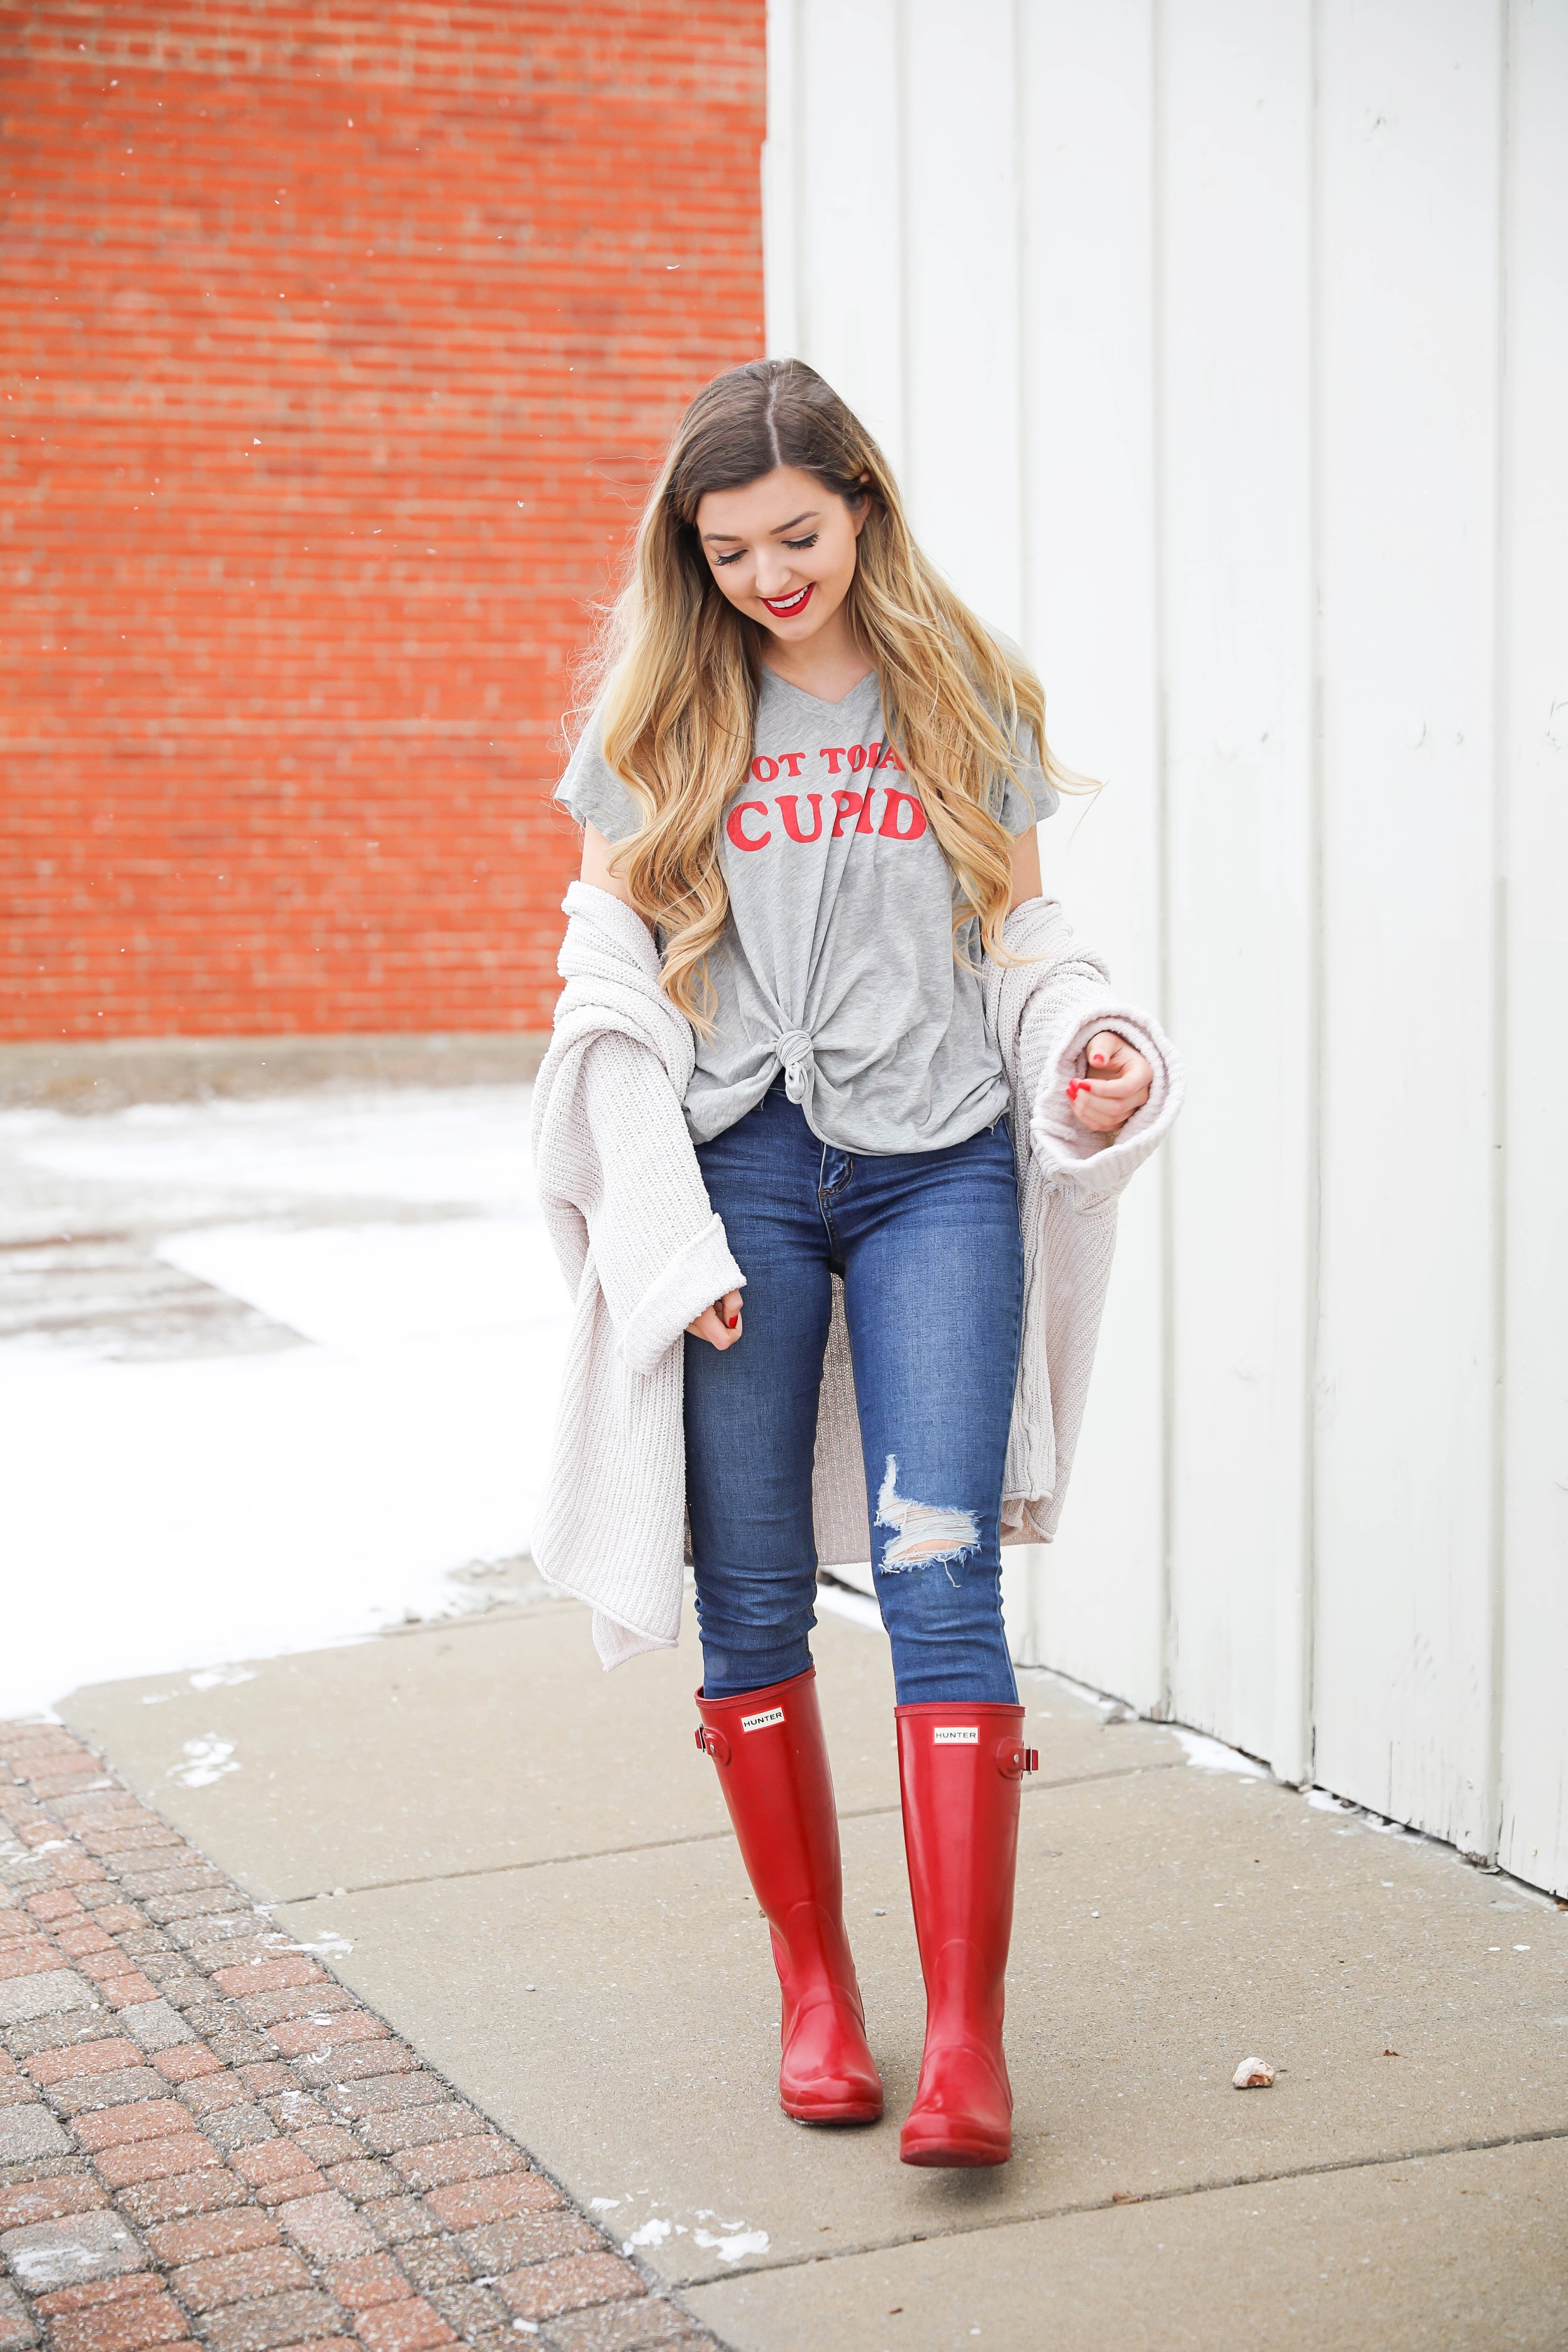 Not today cupid valentine's day tee! Single tee for Valentine's Day. I love this funny valentine's day shirt with free people low tide cardigan over it! I paired it with my red glossy hunter boots! Details on daily dose of charm by lauren lindmark